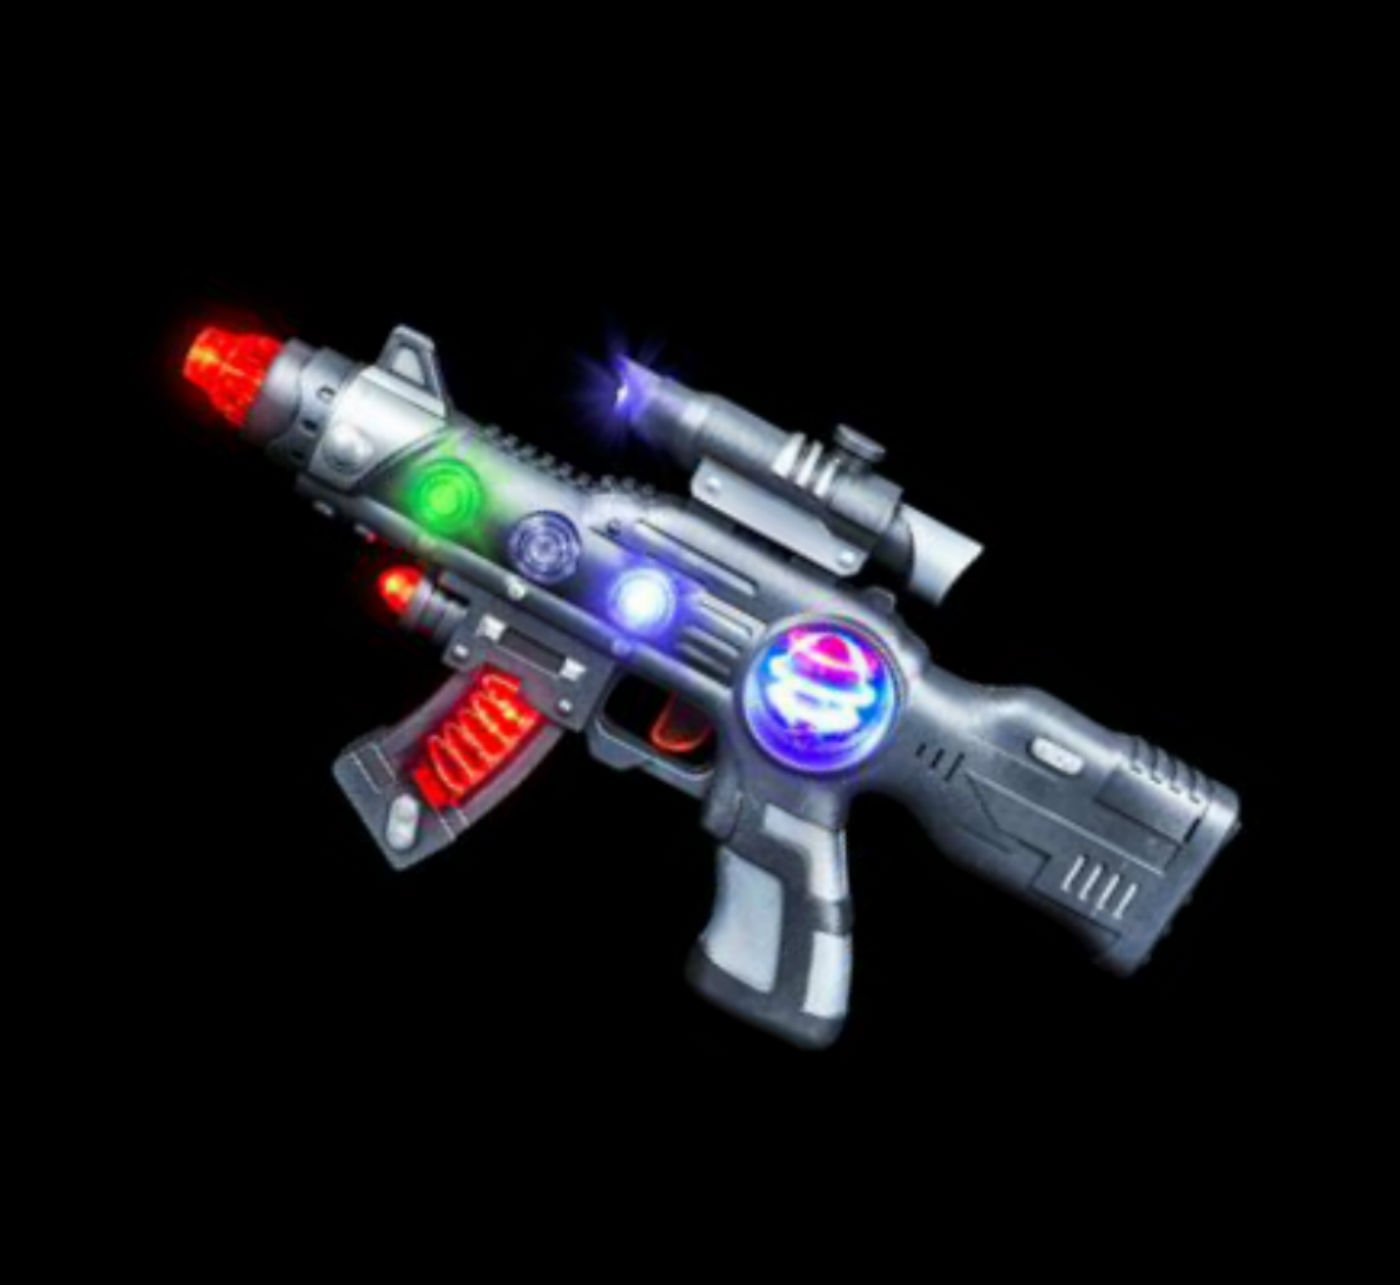 Super Light-Up Space Blaster Gun for Kids with Spinning Lights & Blasting Sounds - Play Kreative TM